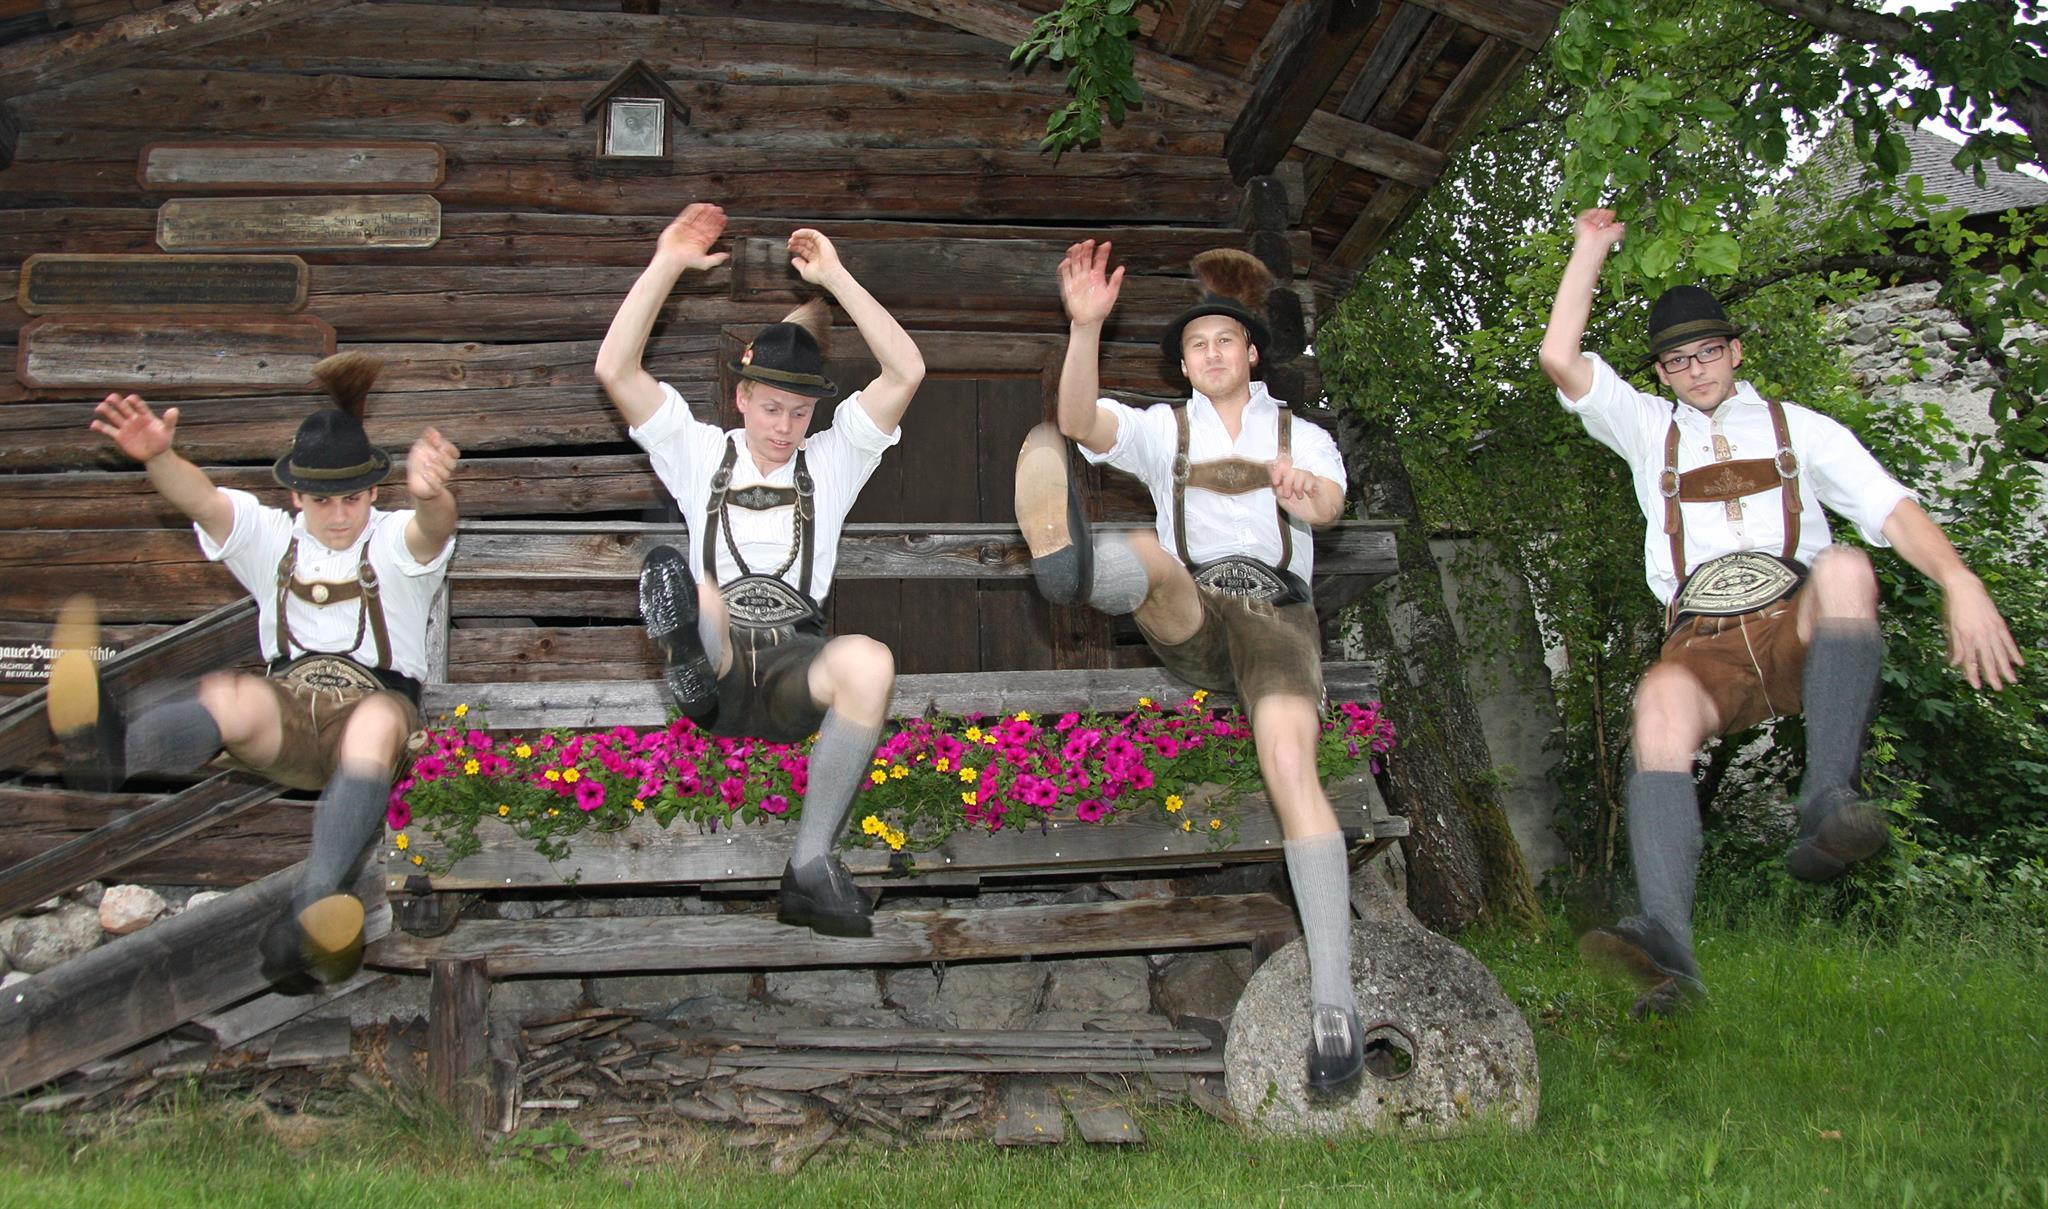 Traditional evening at the castle Kaprun - 16/07/2019, from 8:00 PM